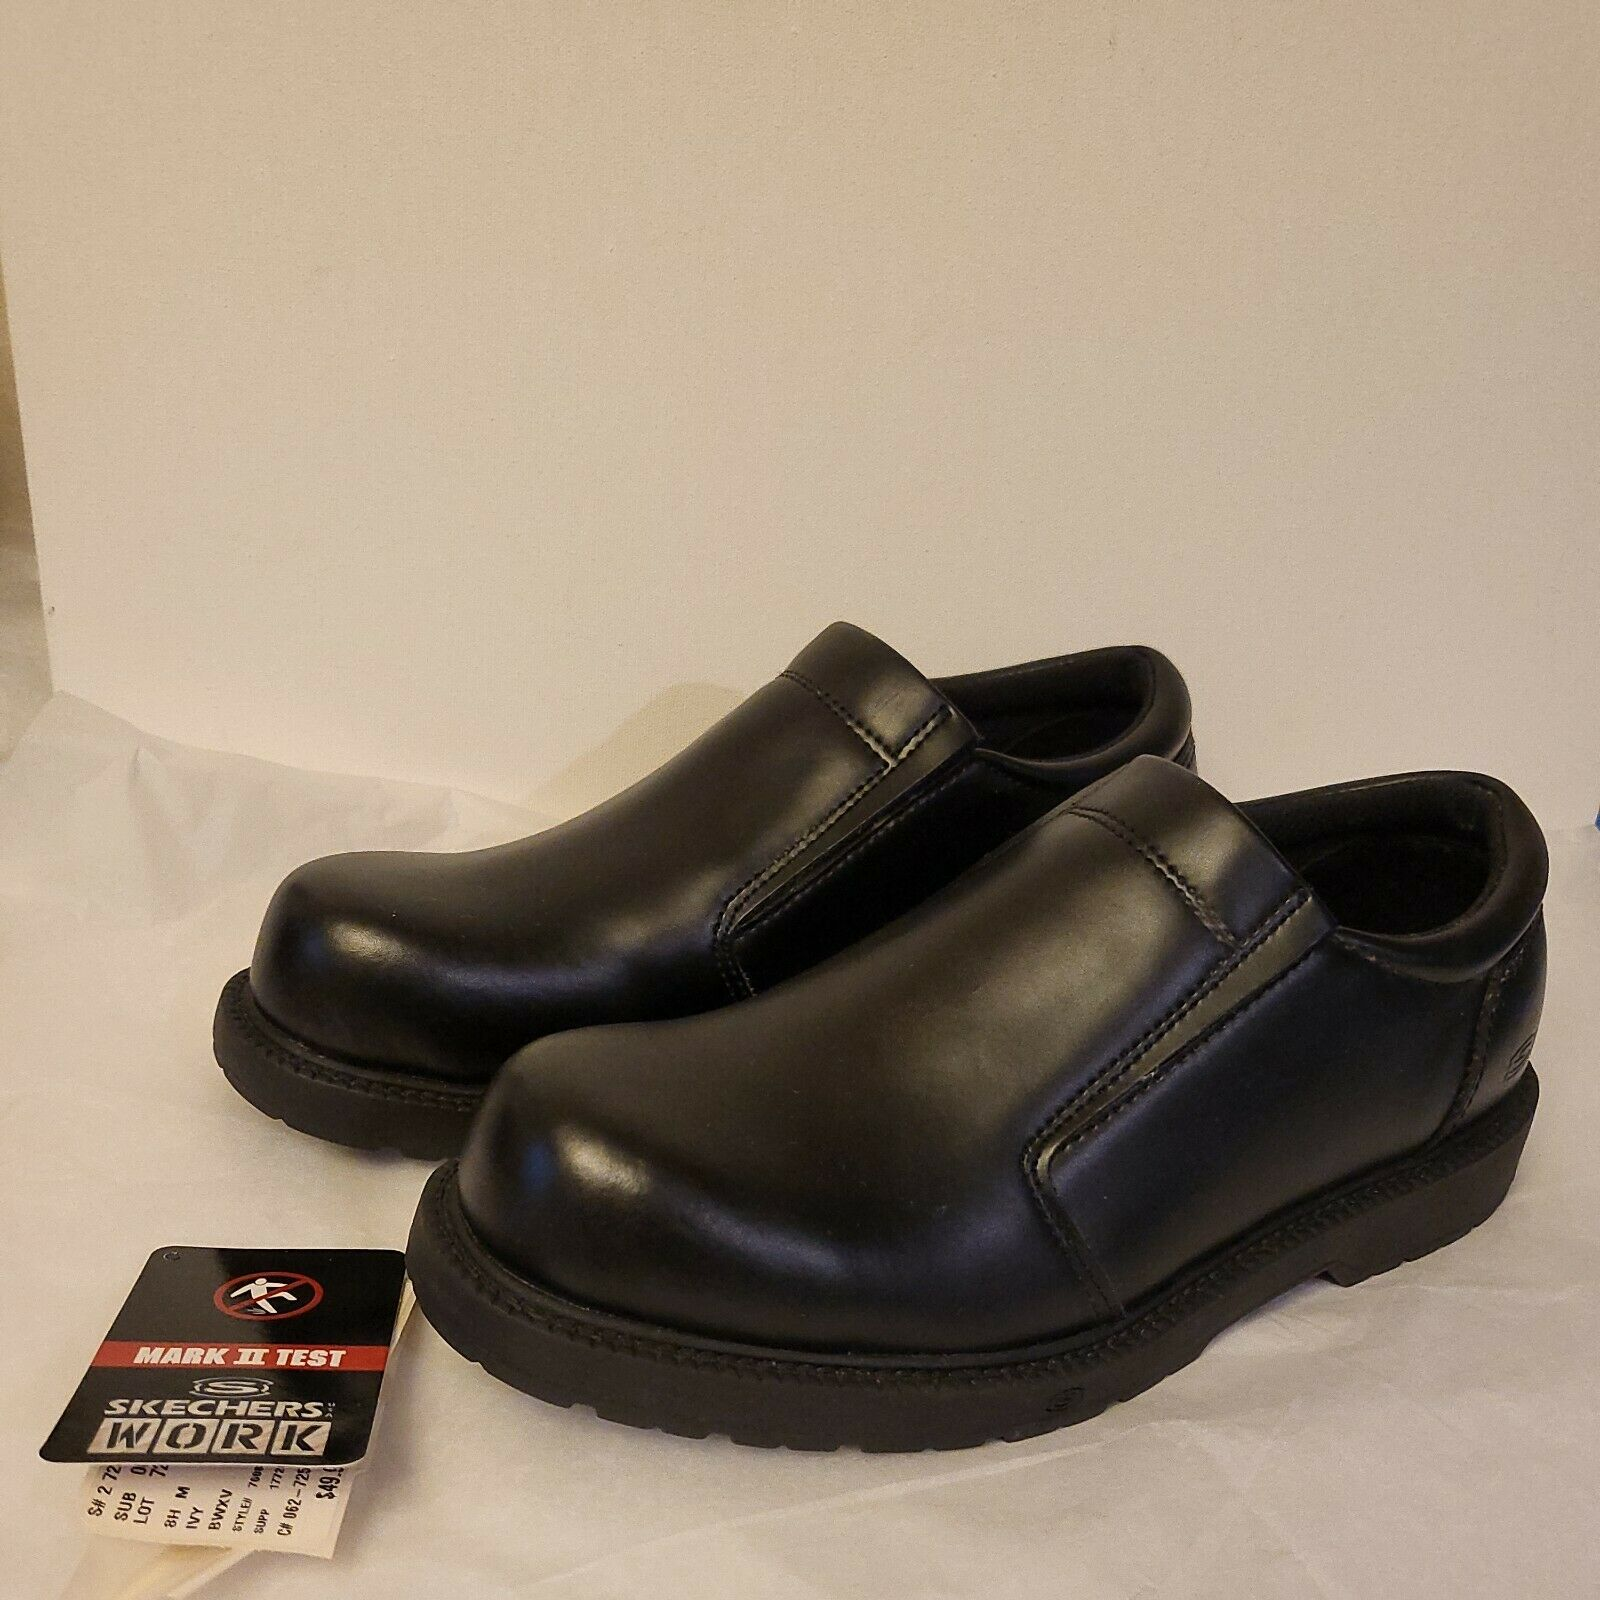 New 8.5 Black Skechers Work Shoes Slip Resistant Sole Mens 76083 Ivy Leather